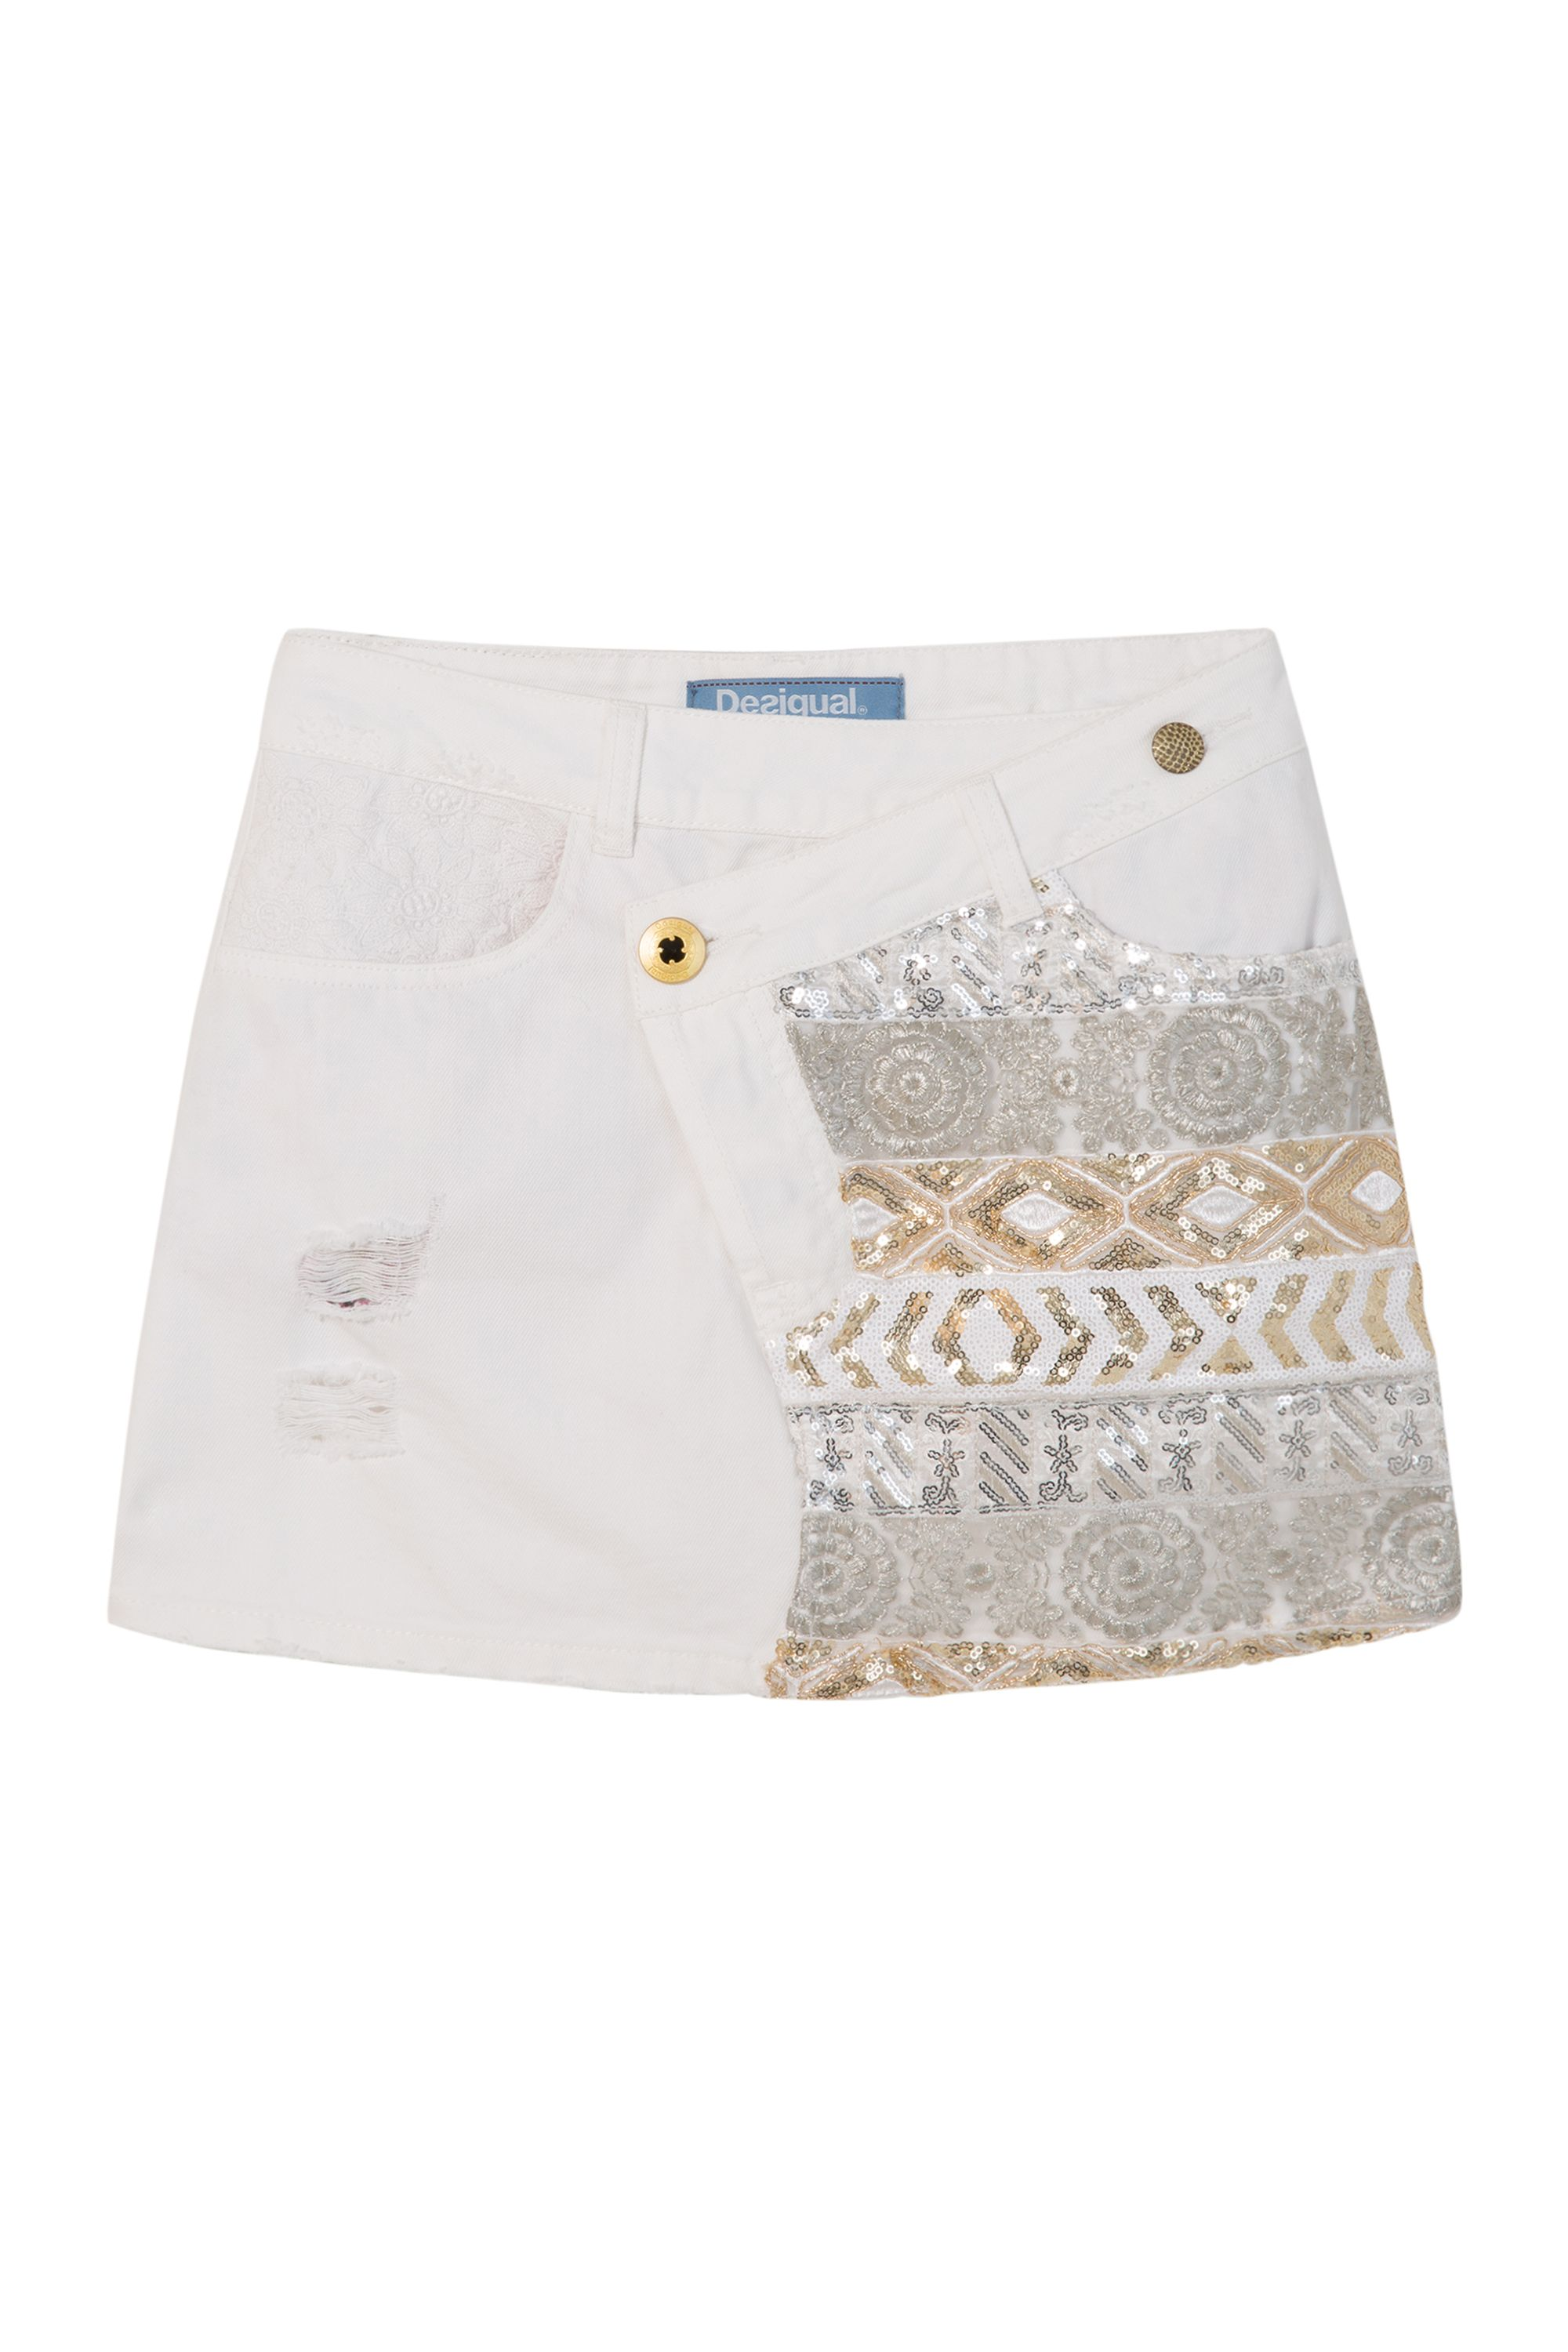 Desigual Exotic White Skirt, White